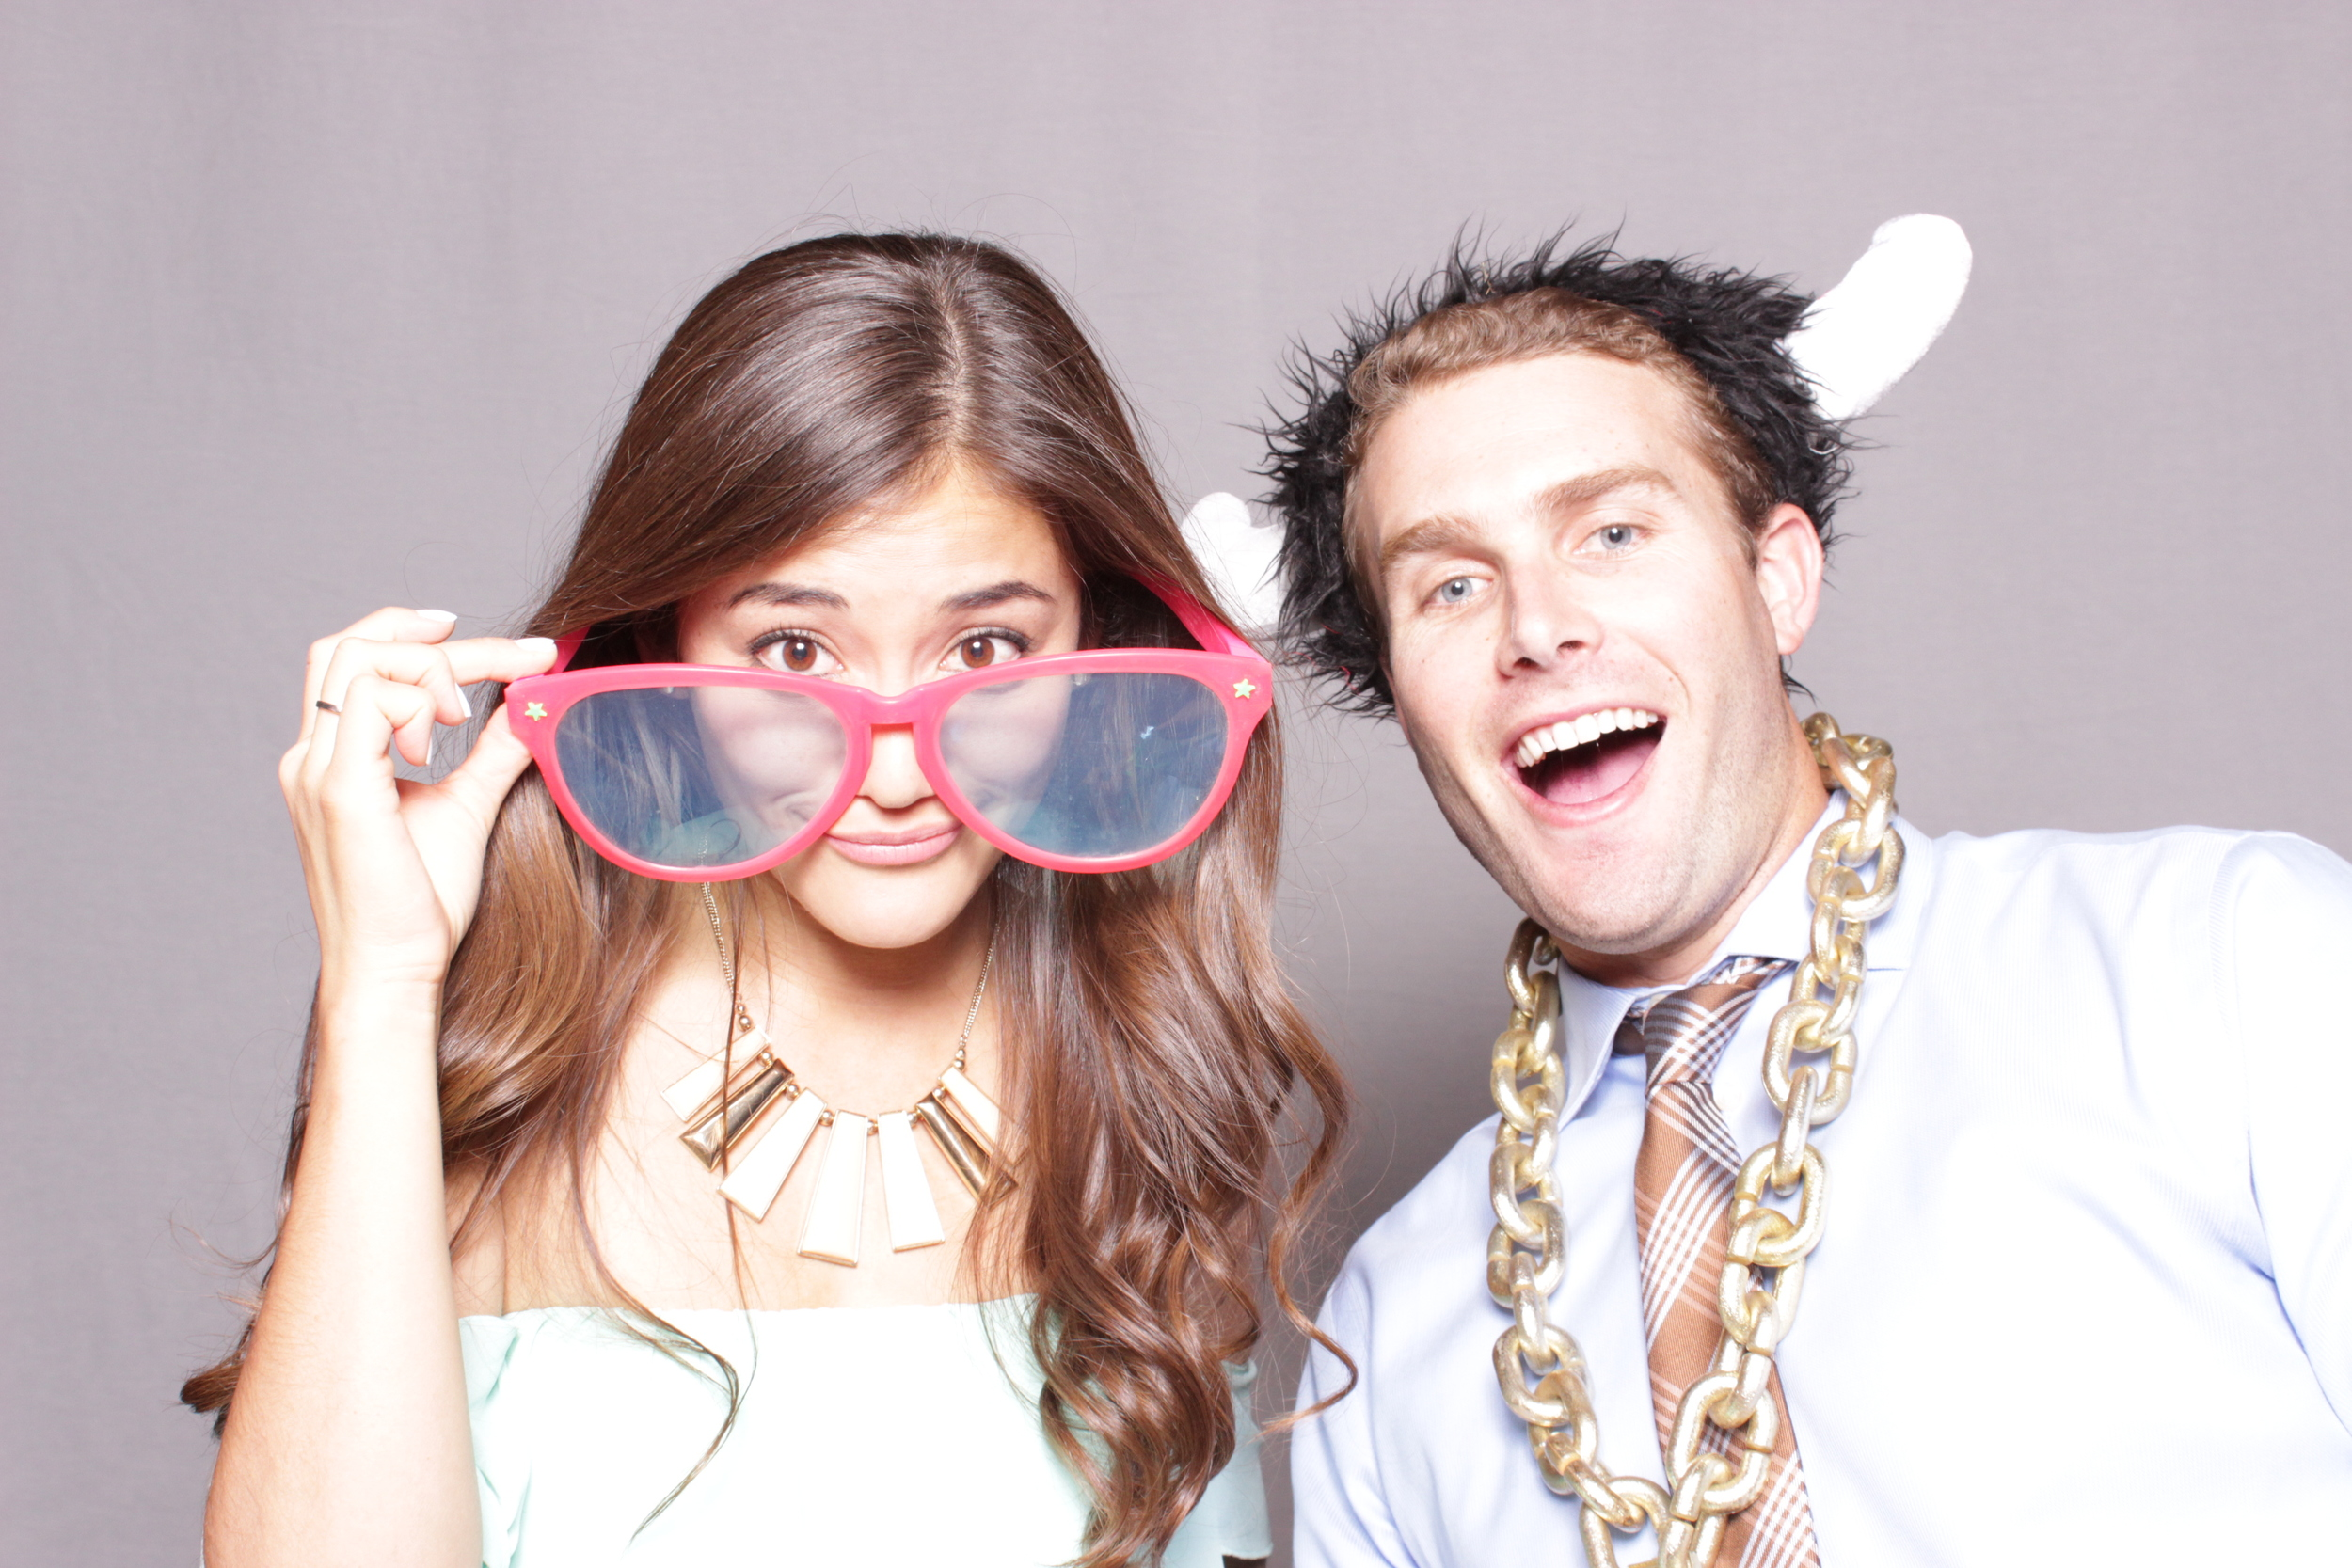 Cameron-Kristen-sacramento-photo-booth_0045.JPG